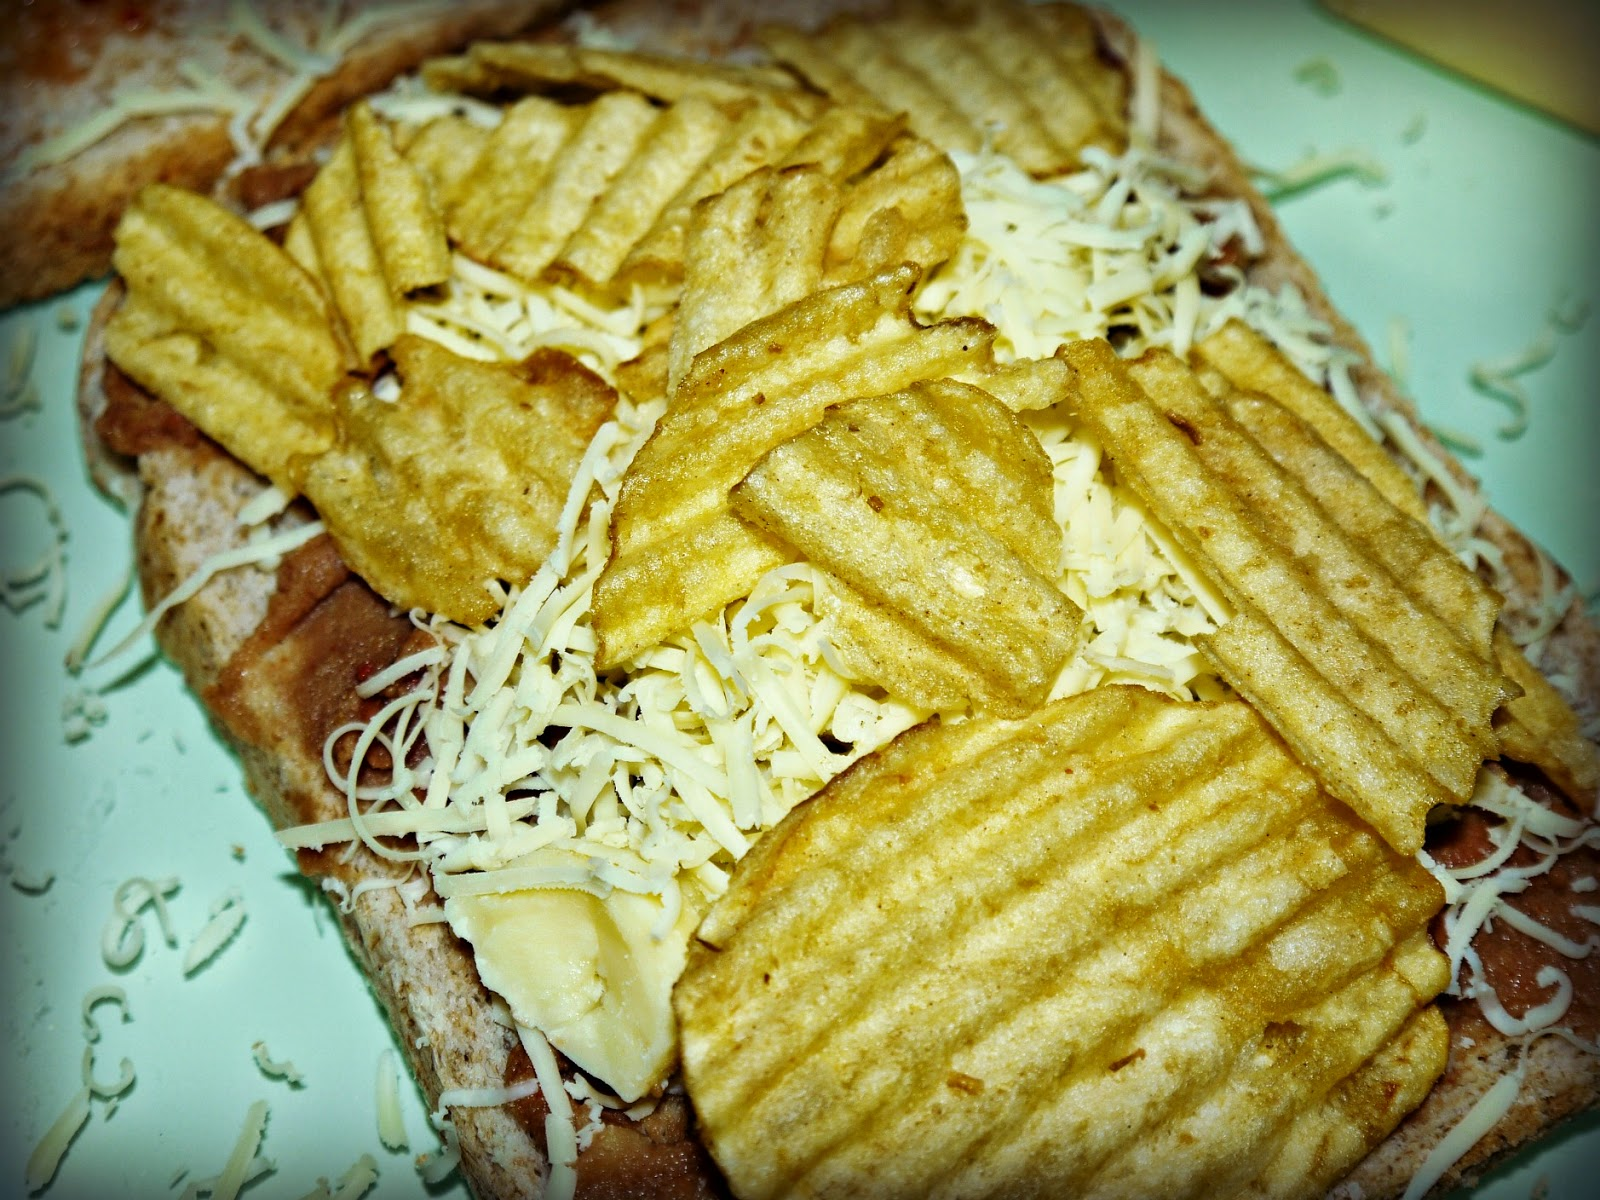 sandwich, cheese, crisps